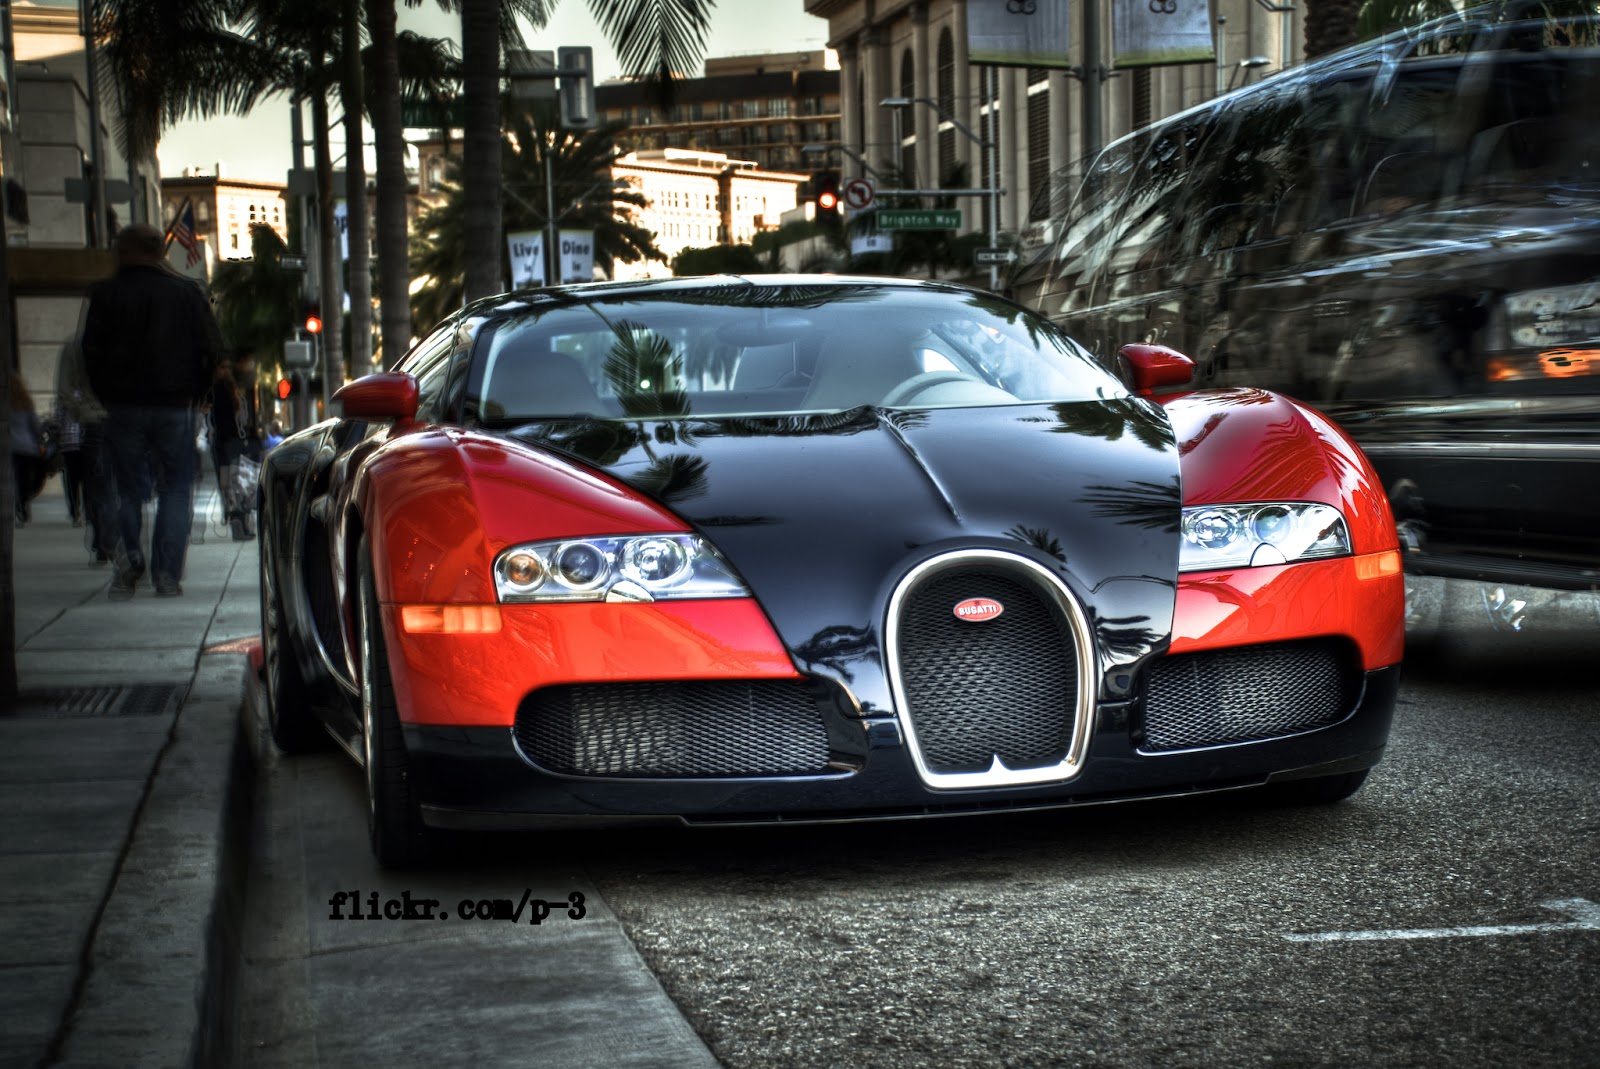 Cars View: HighResolution Exotic Car Pictures | Luxury Cars Wallpaper